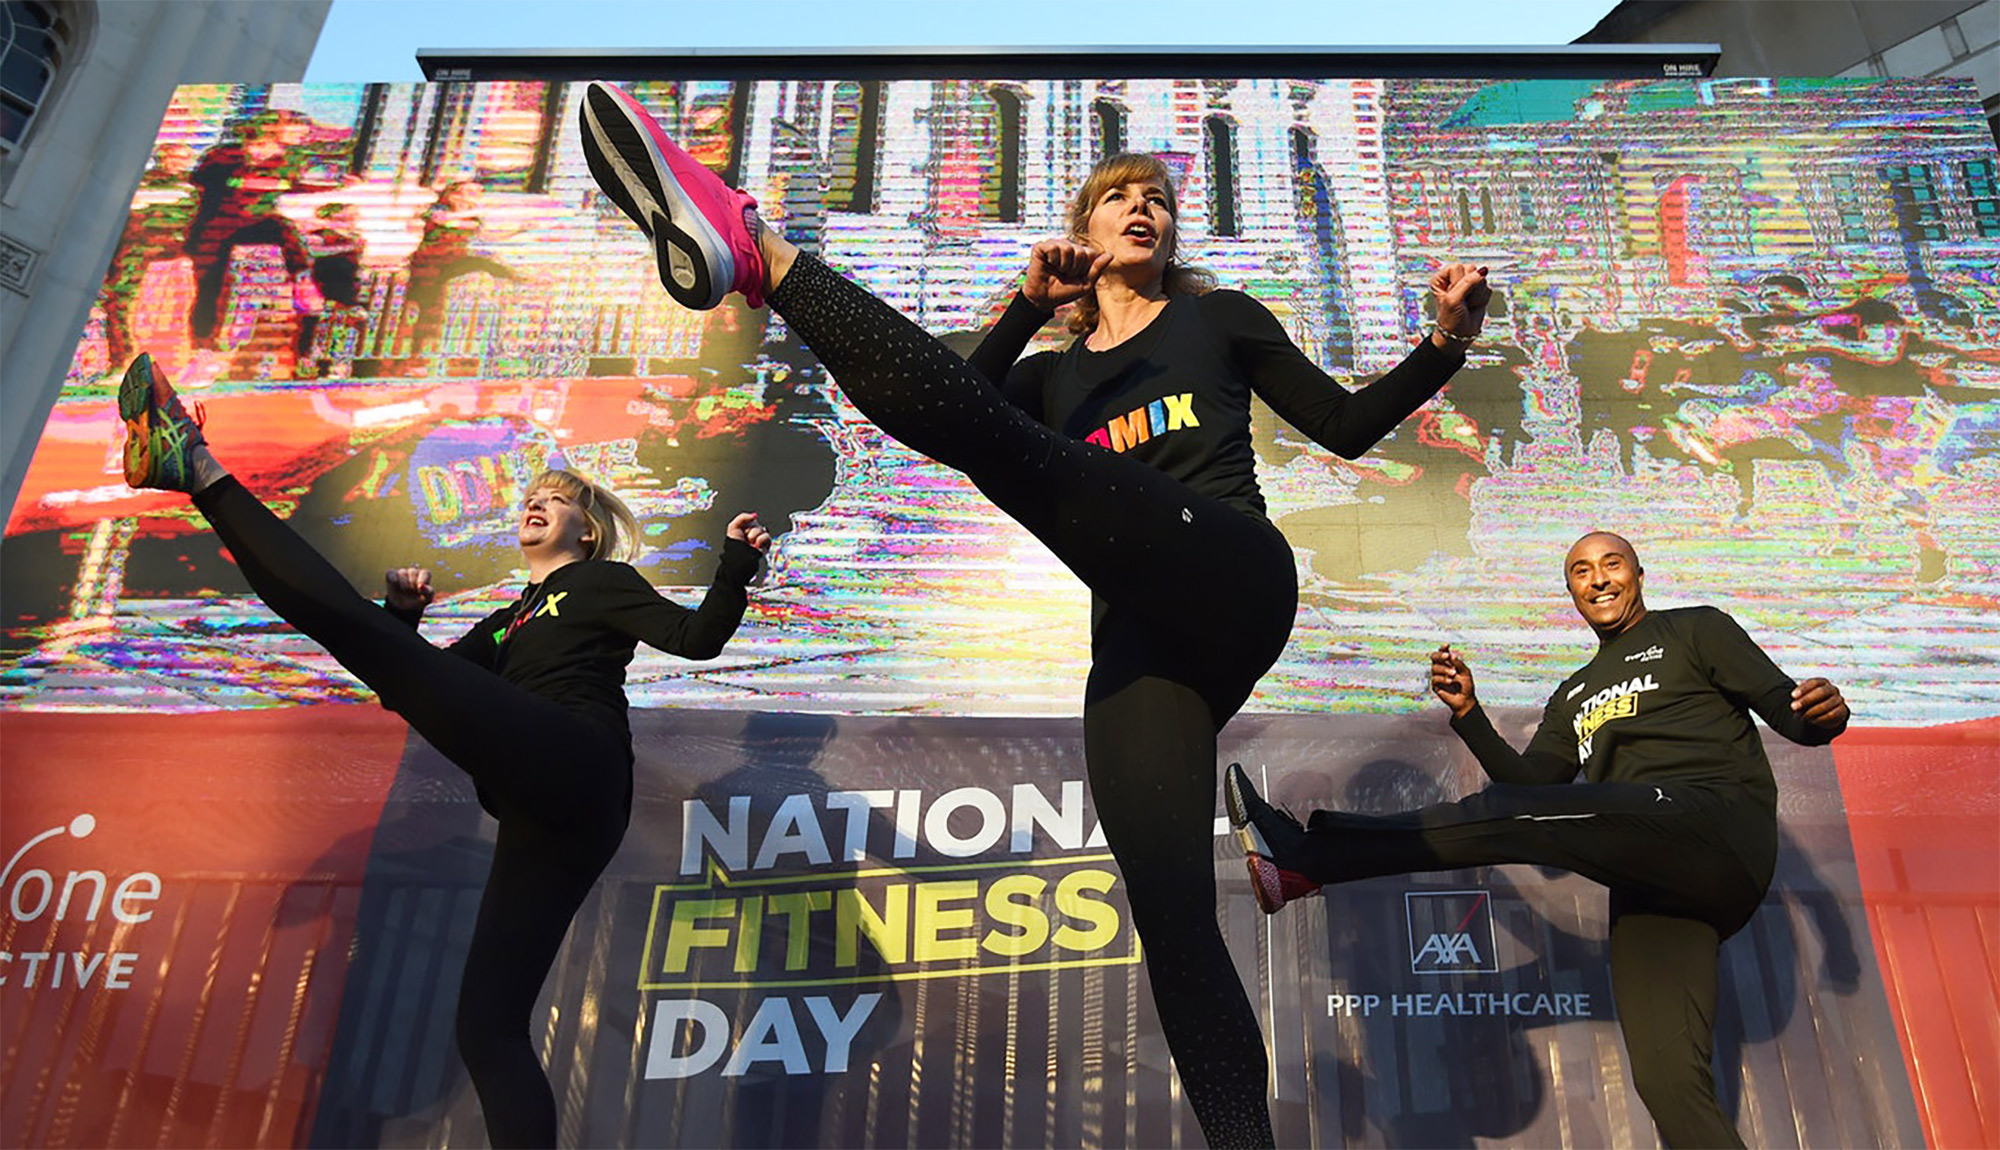 National Fitness Day hits headlines across the UK to inspire the nation